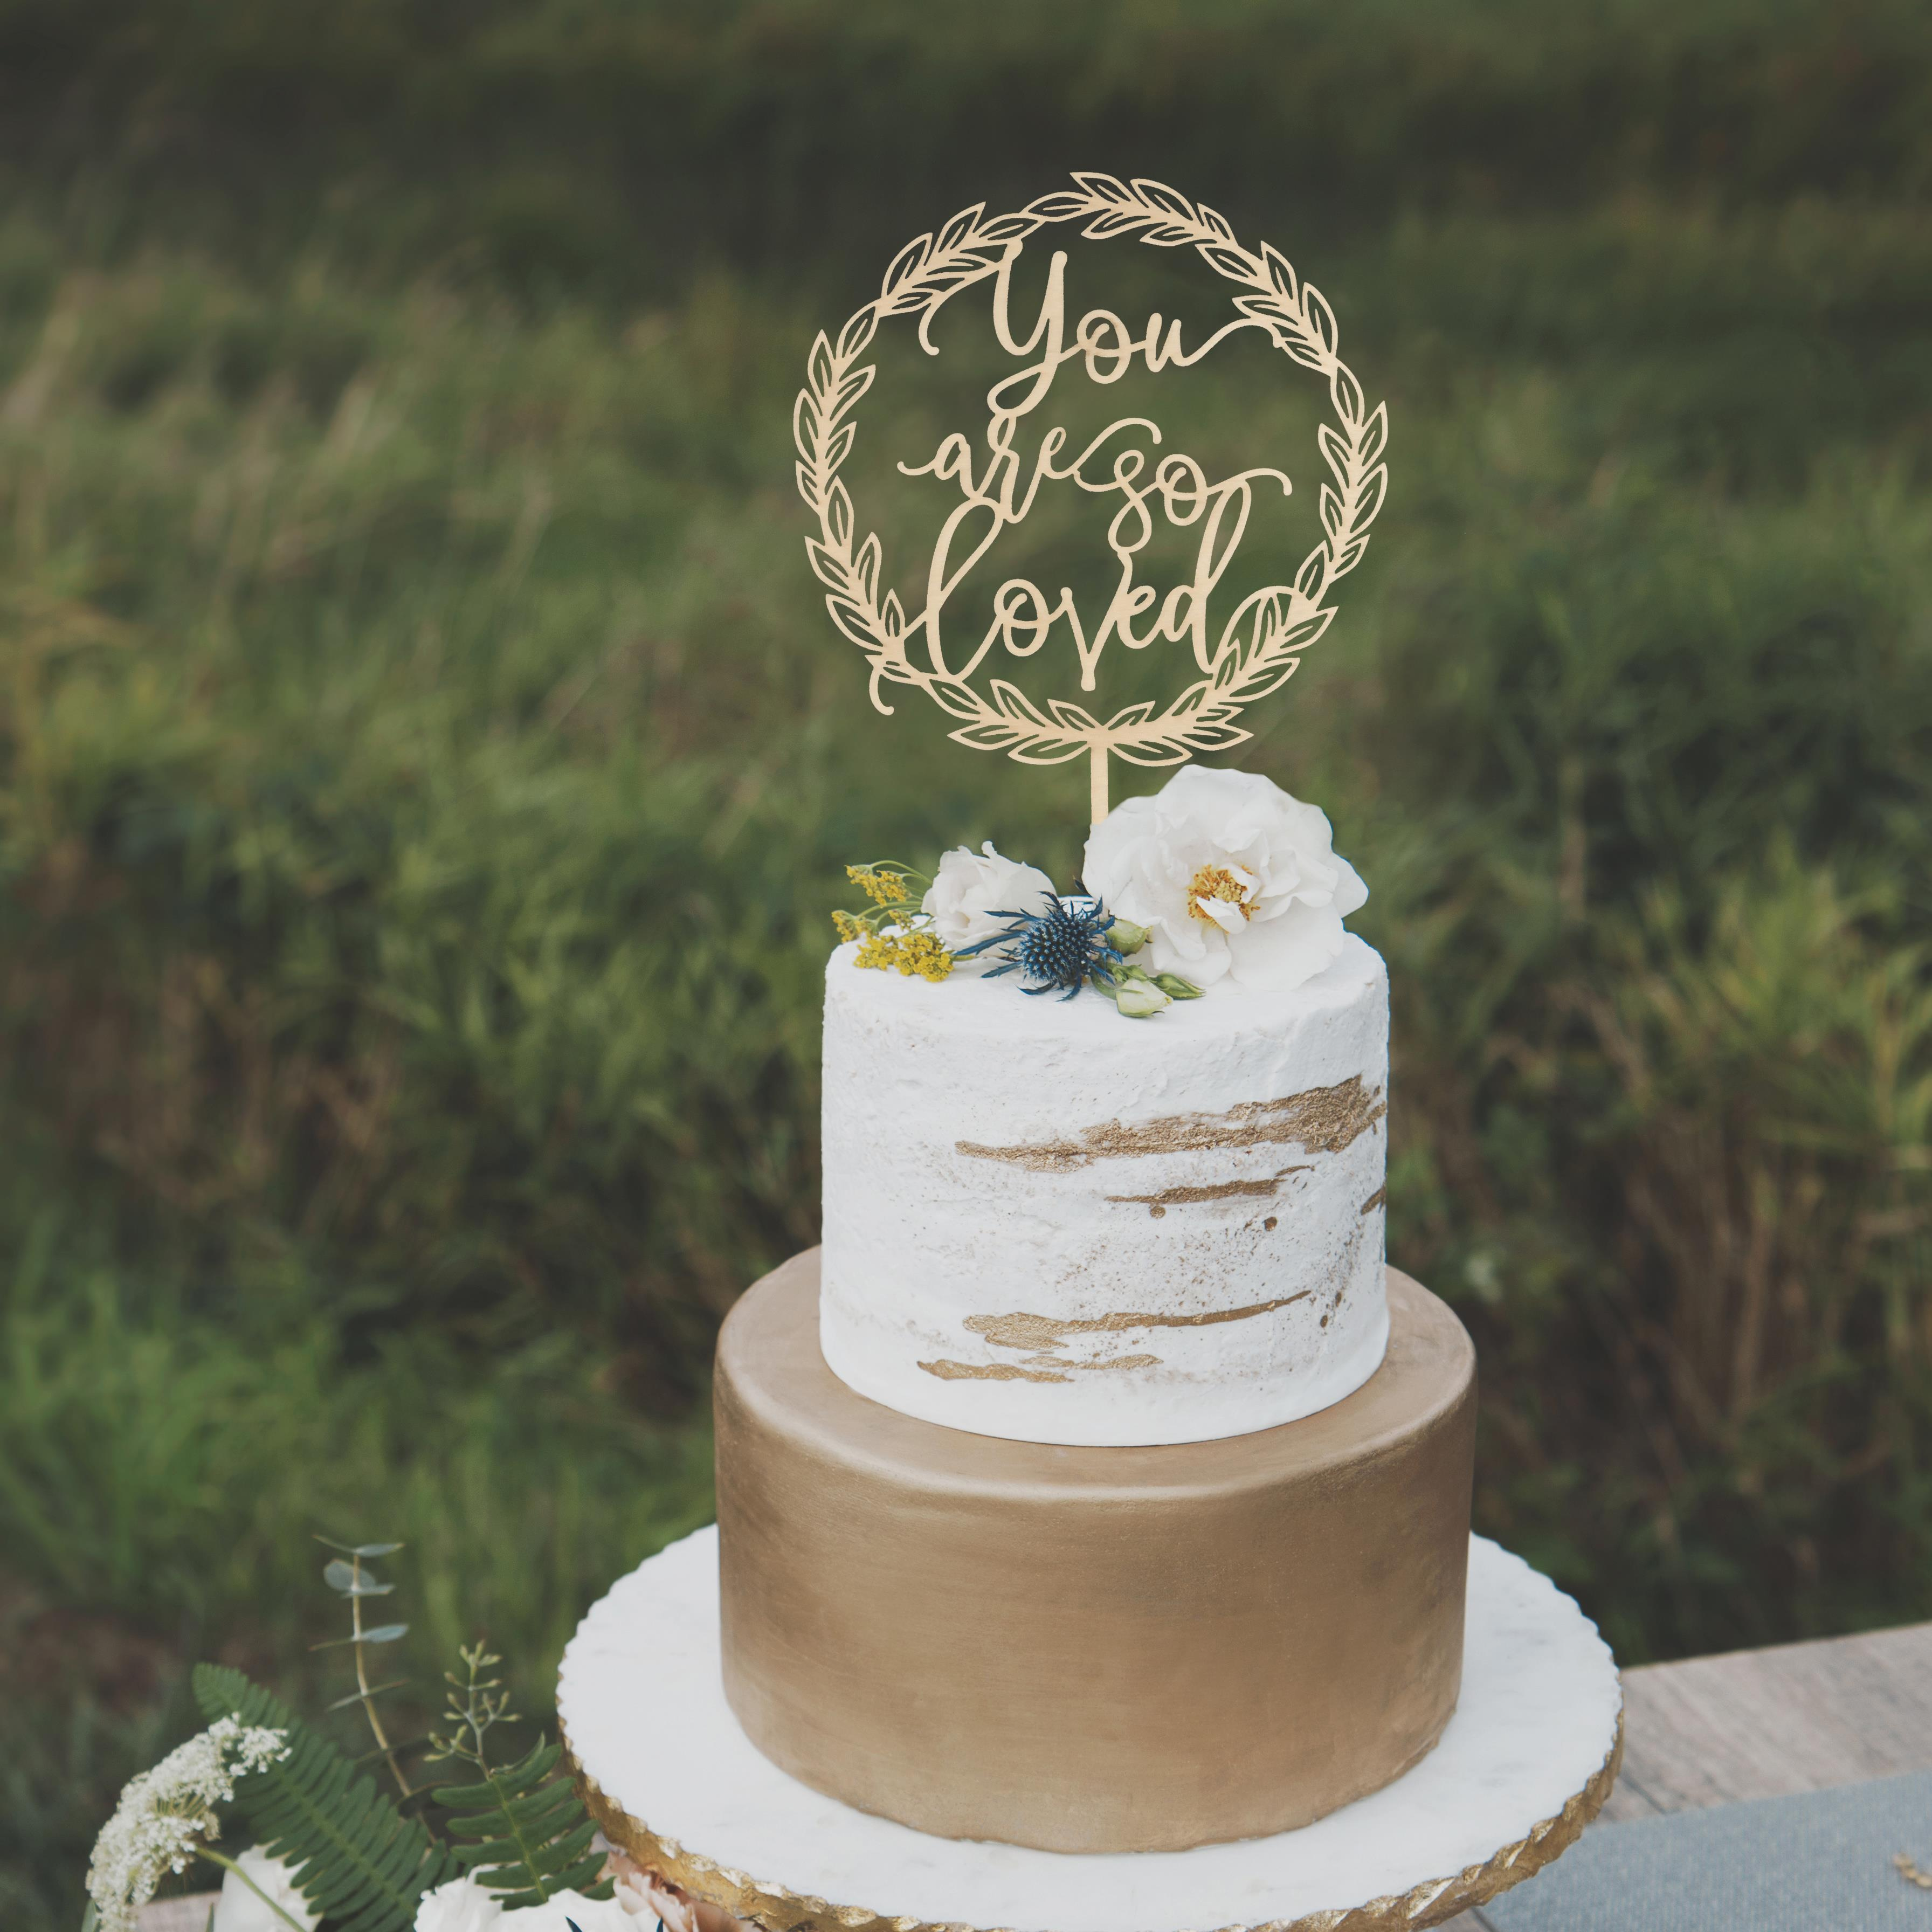 You are so loved Wedding cake topper by Thistle and Lace